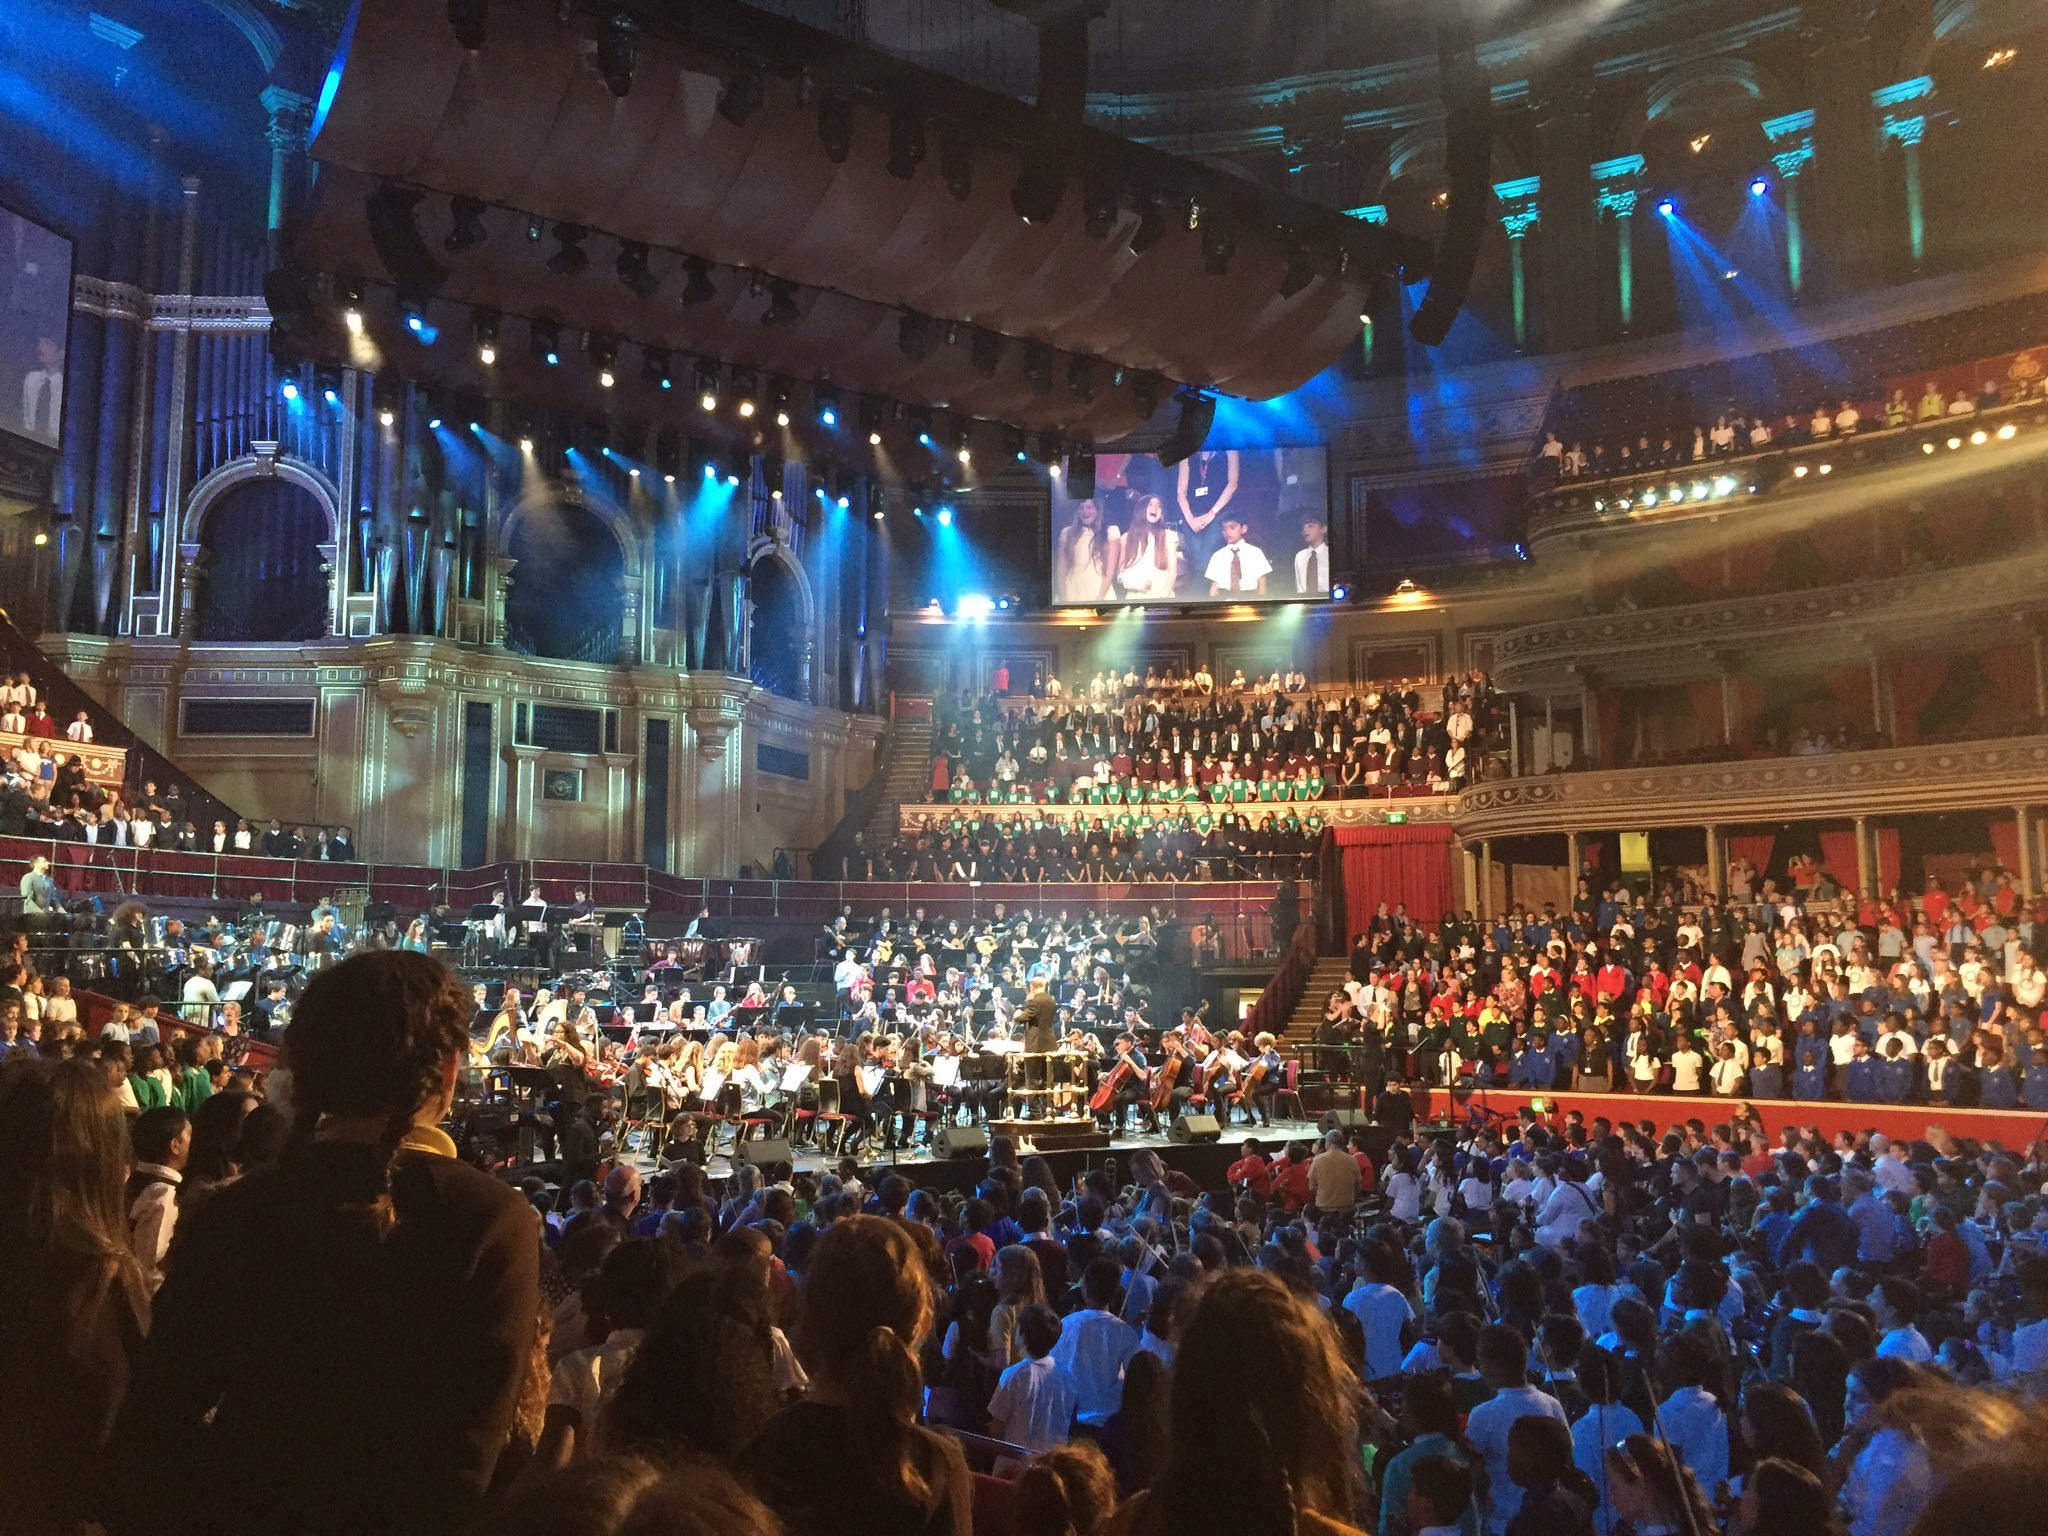 ... Which the children will remember forever. I felt so honoured to be there.8 years old at @RoyalAlbertHall https://t.co/fuC8Jc88qm